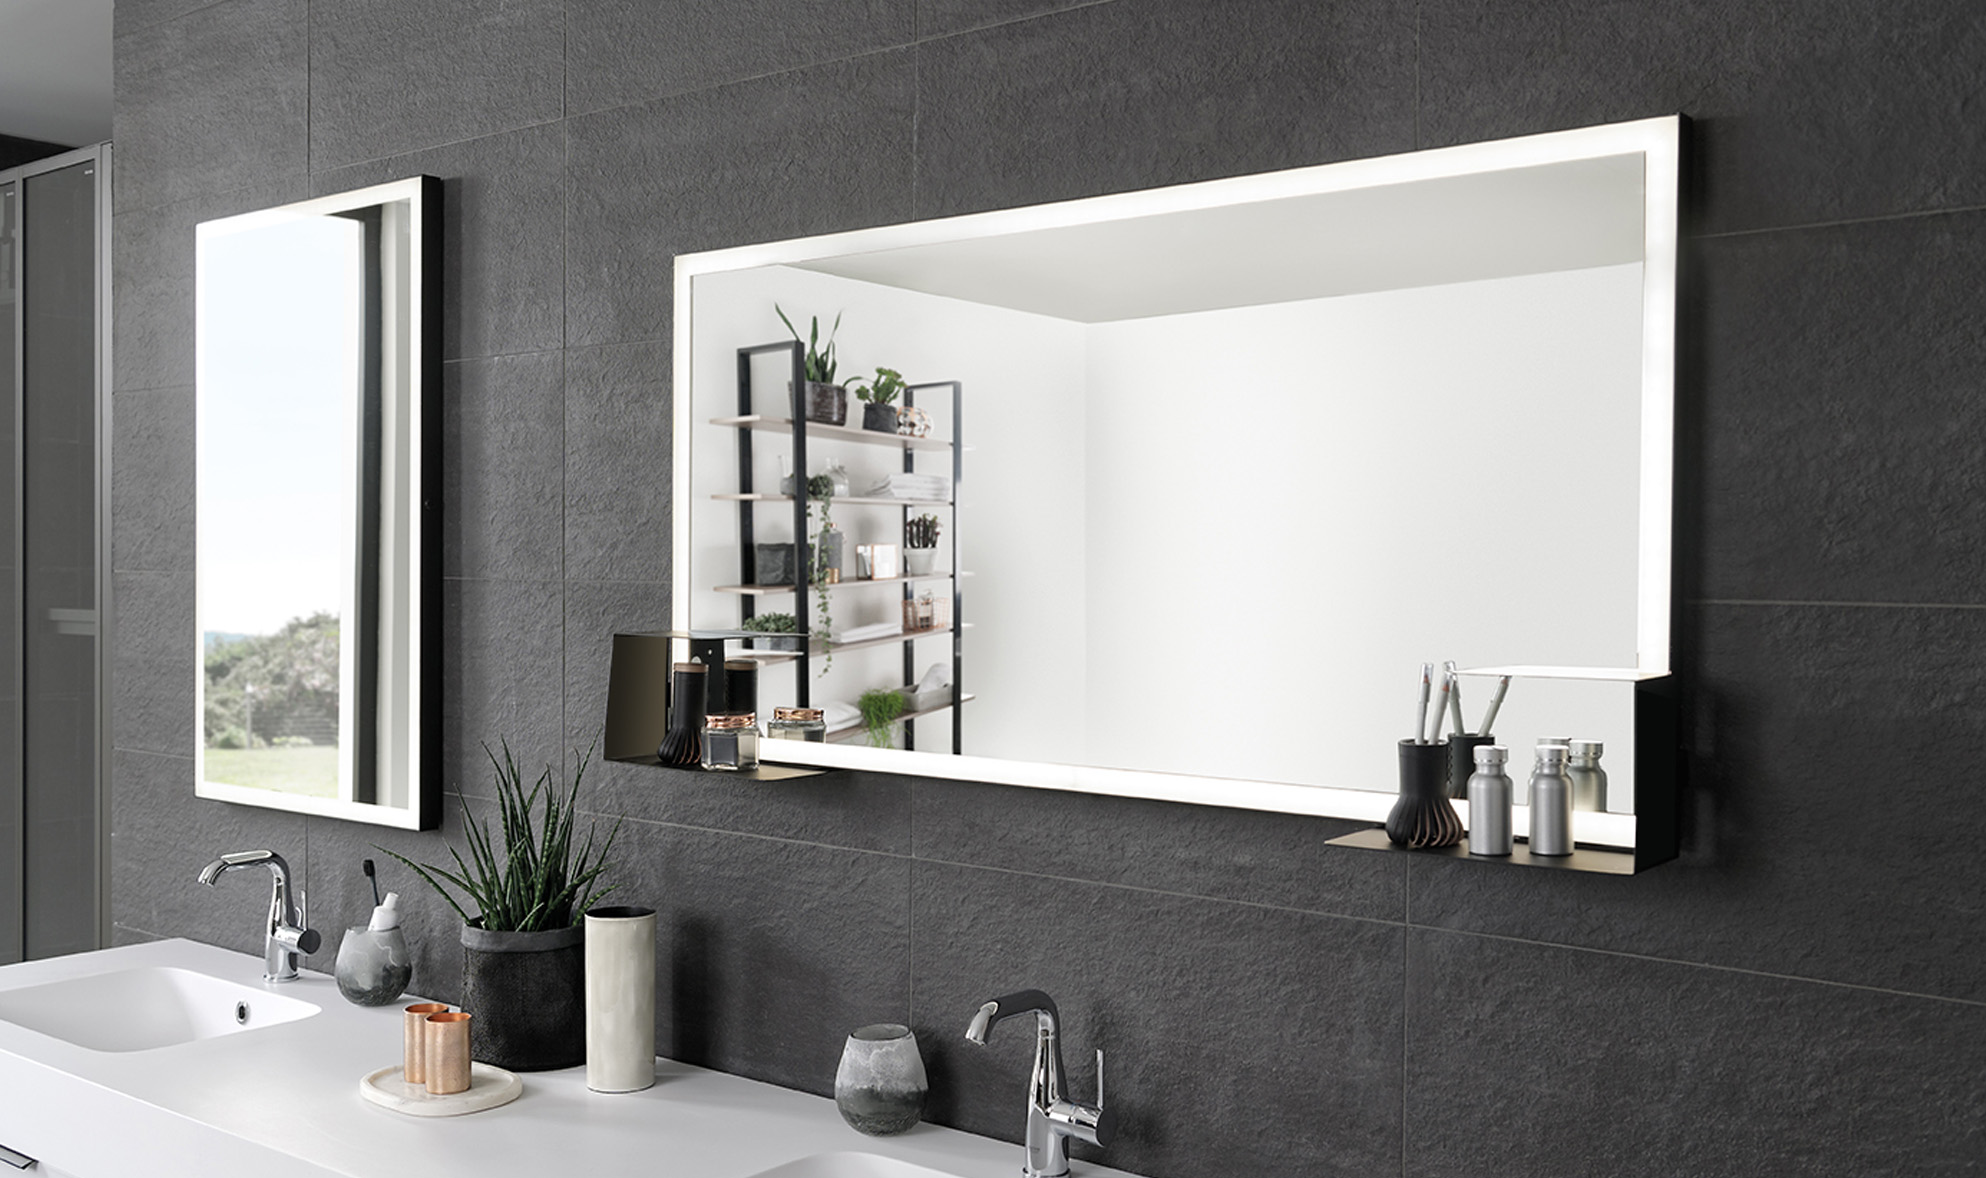 Rectangle mirror with shelves